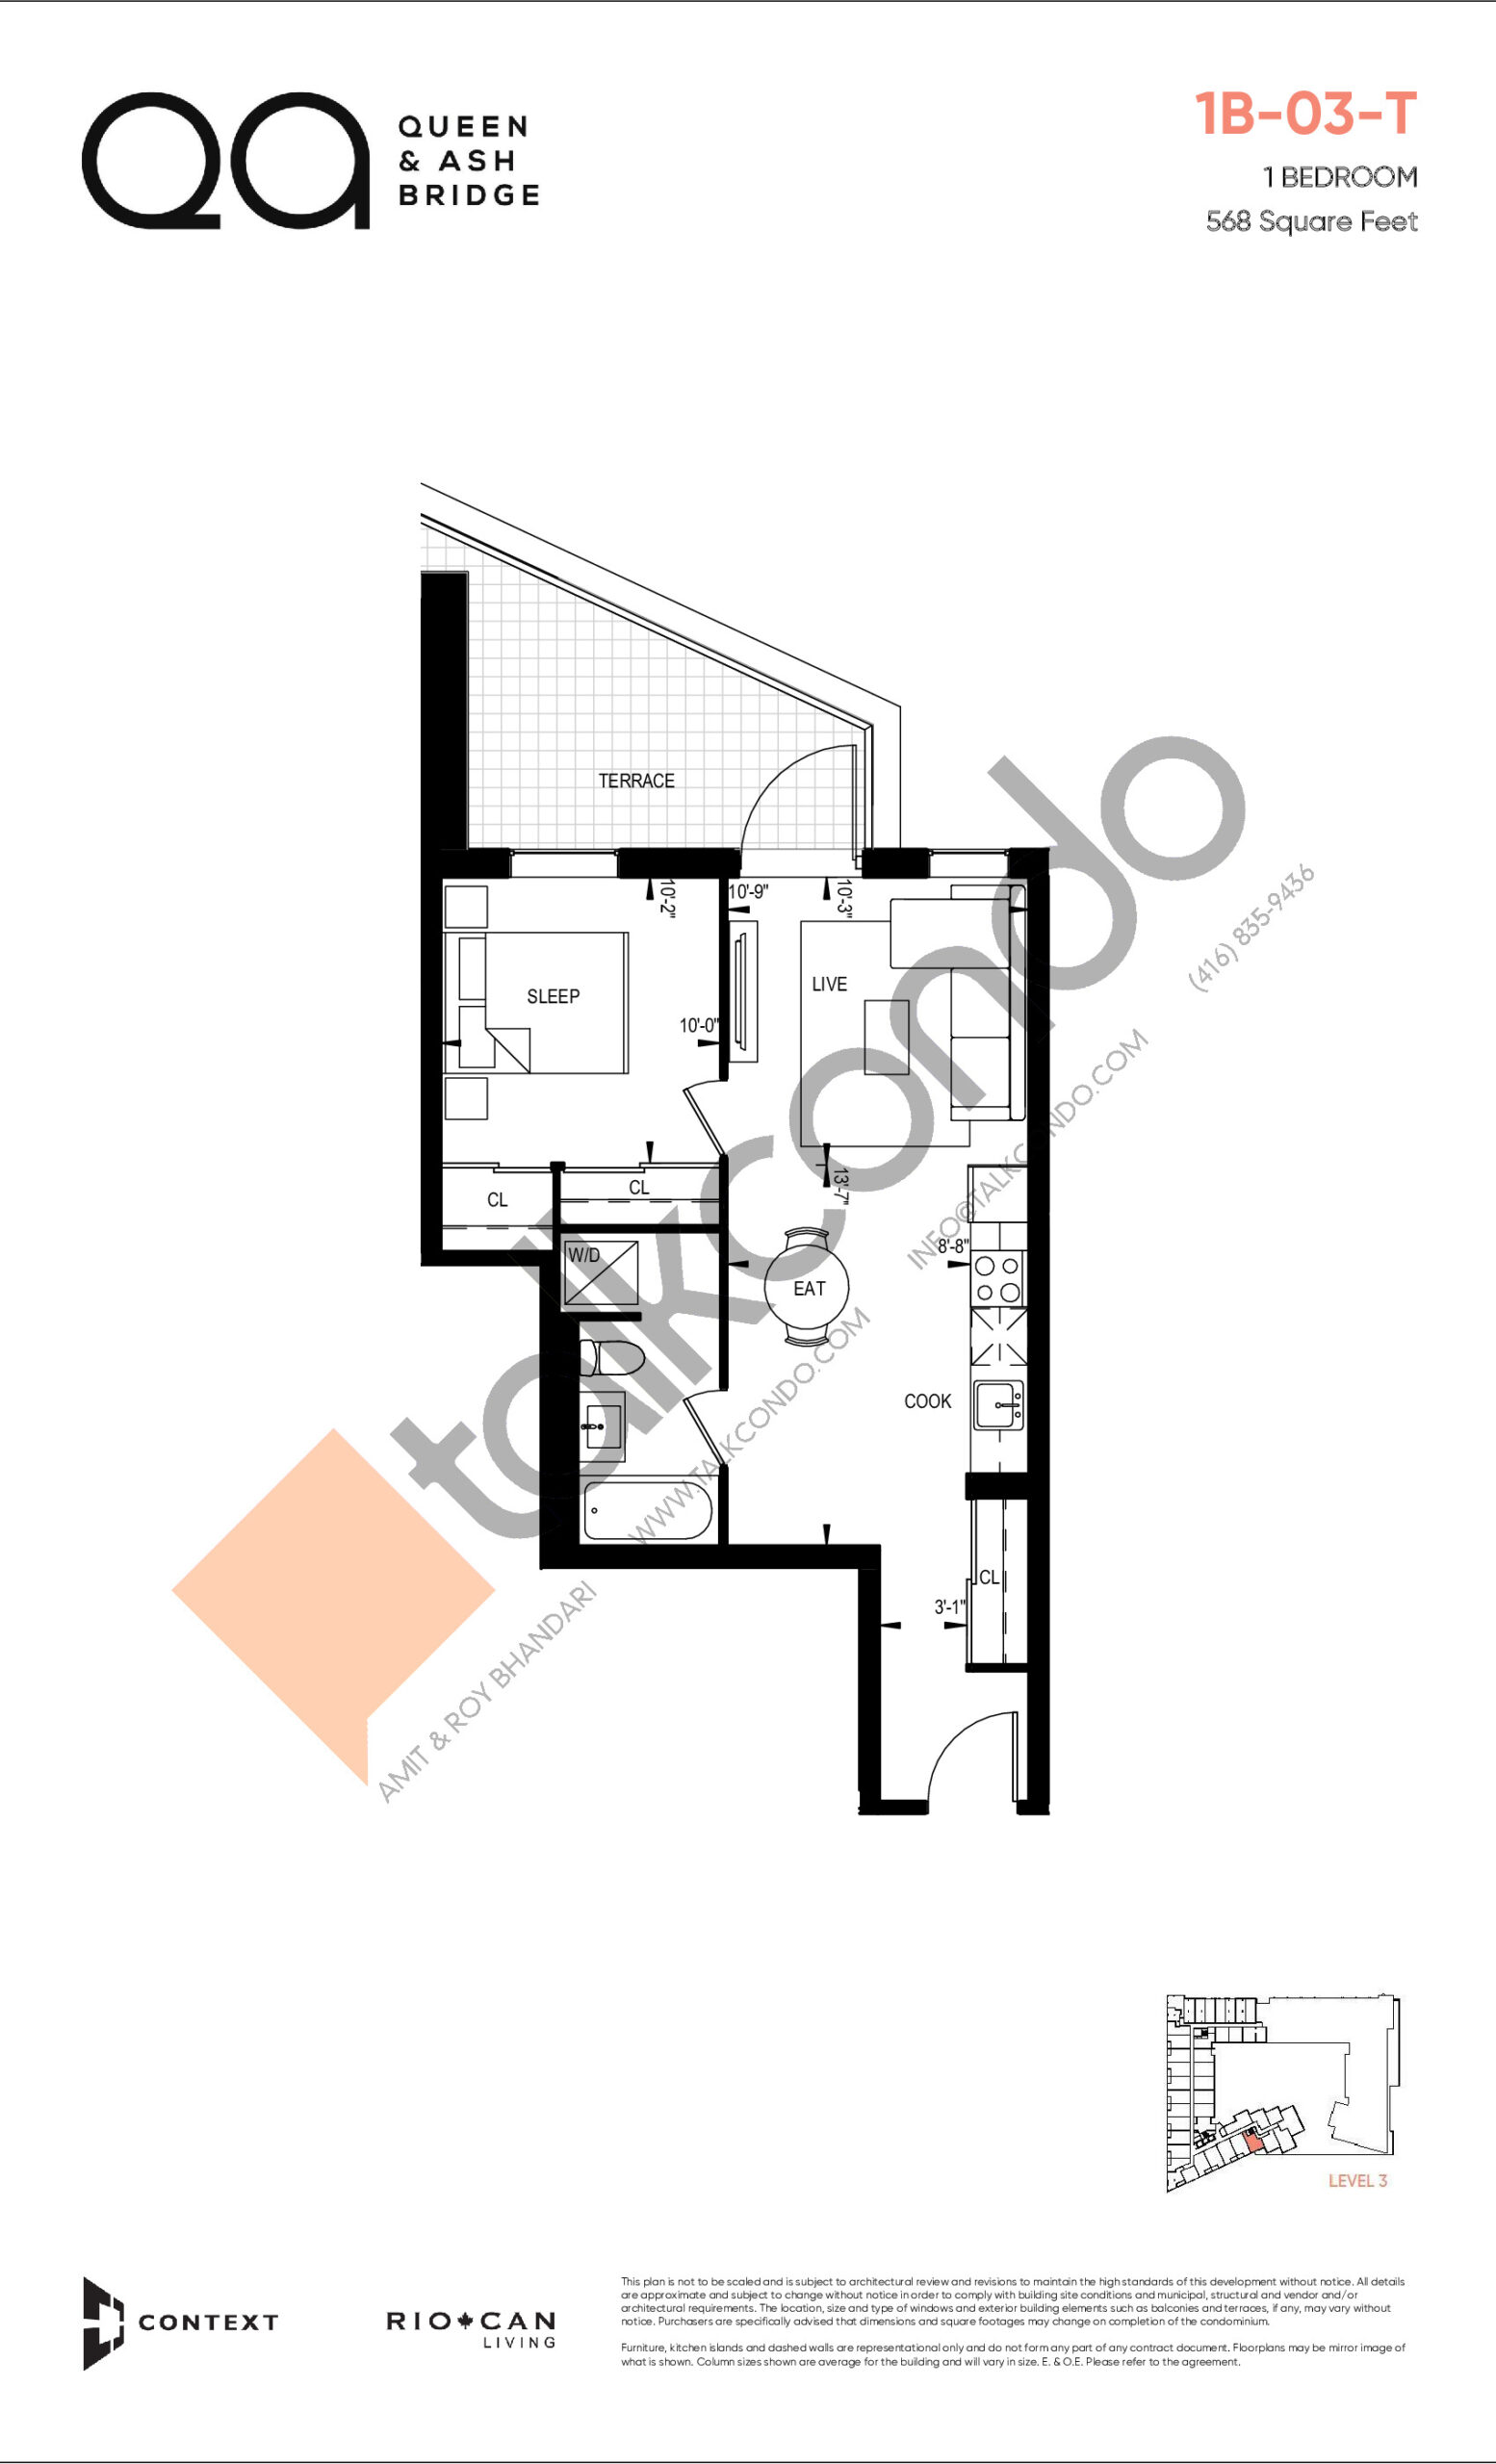 1B-03-T (Queen Collection) Floor Plan at QA Condos - 568 sq.ft